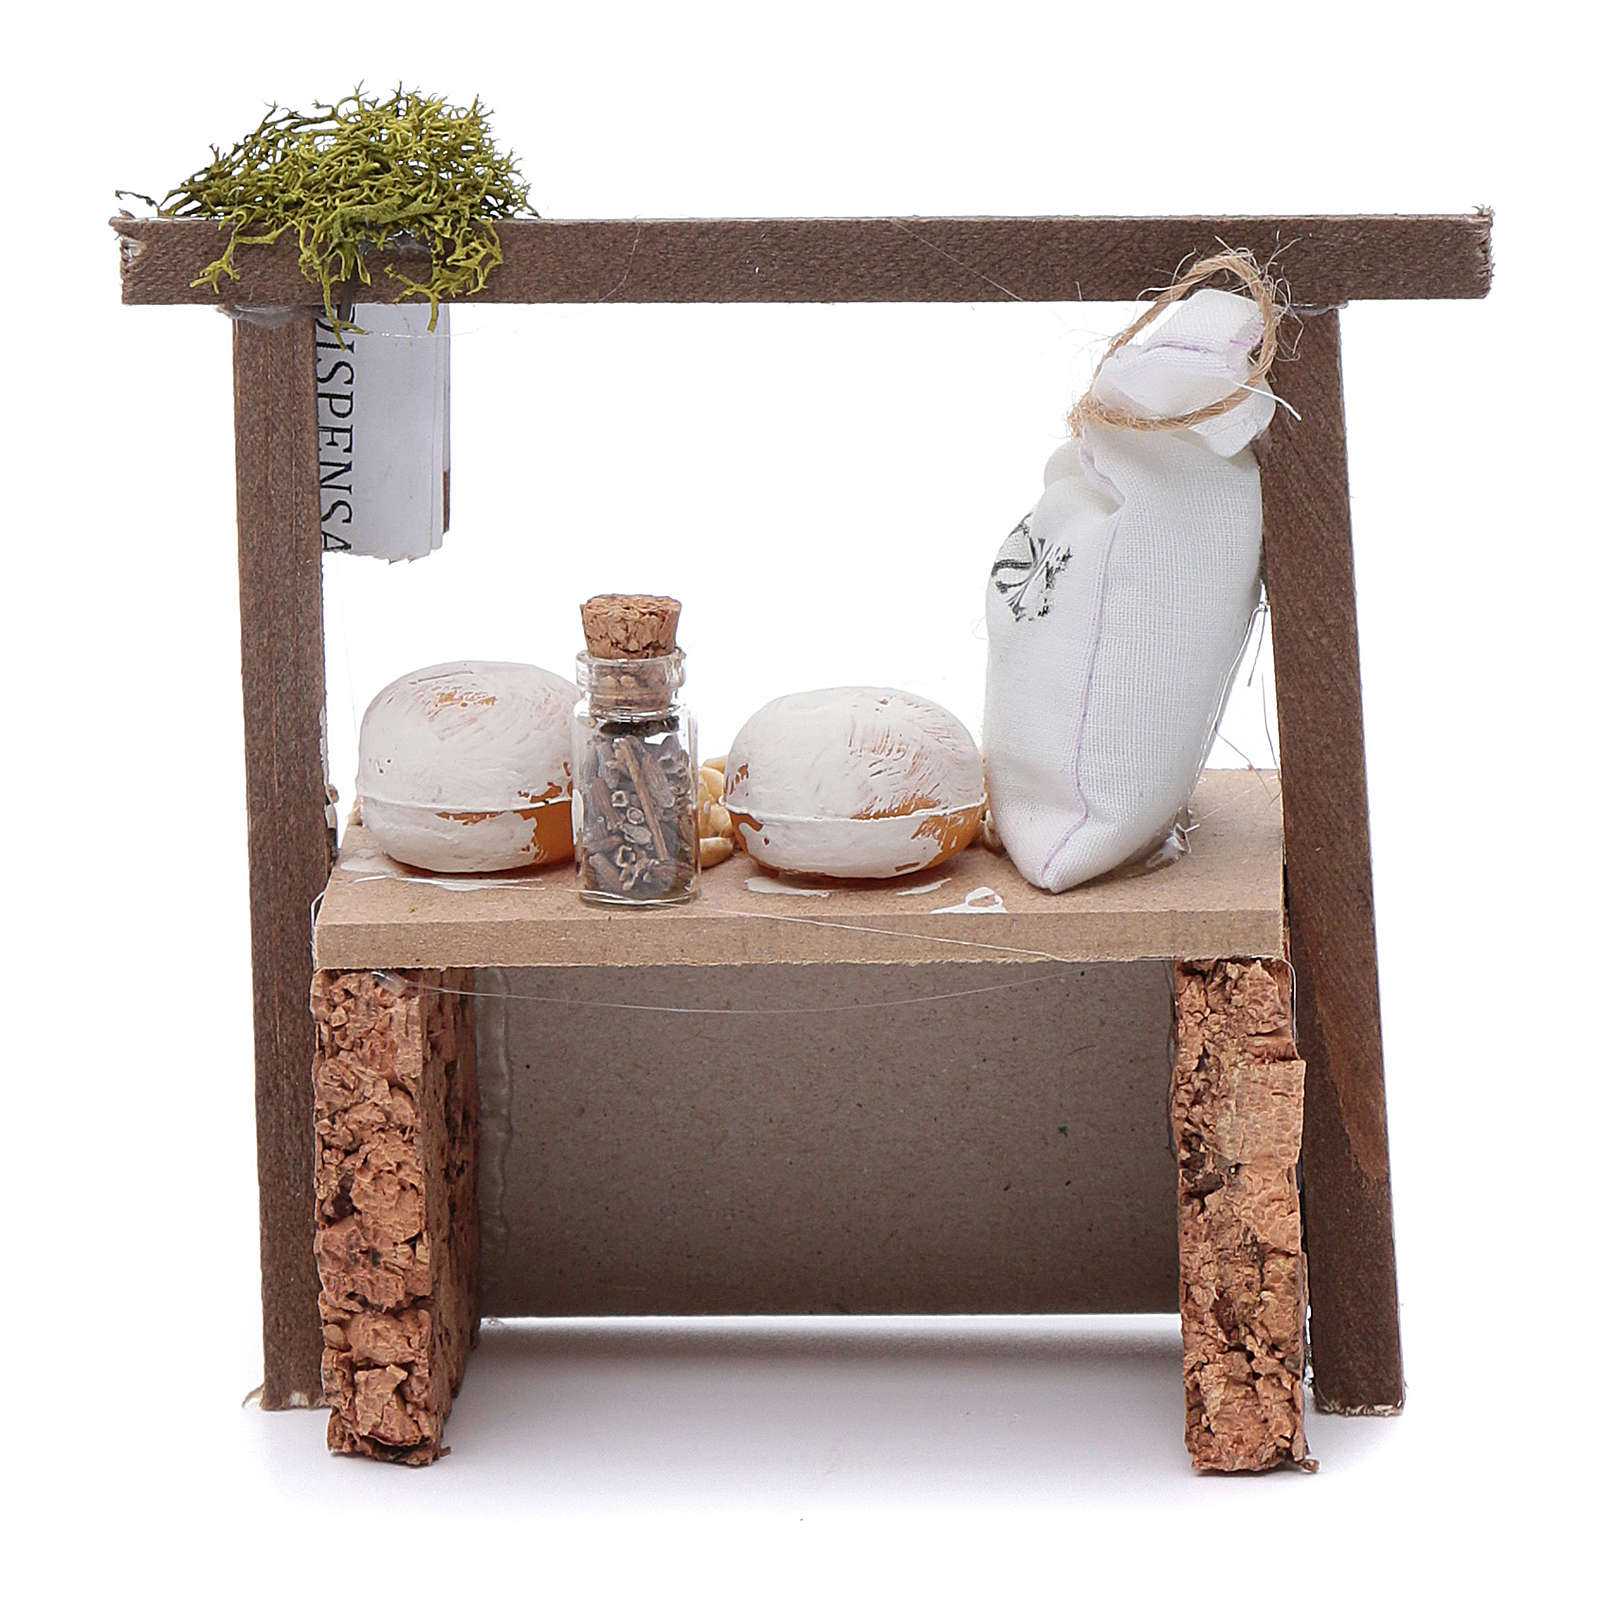 Table with flour and cereals 4